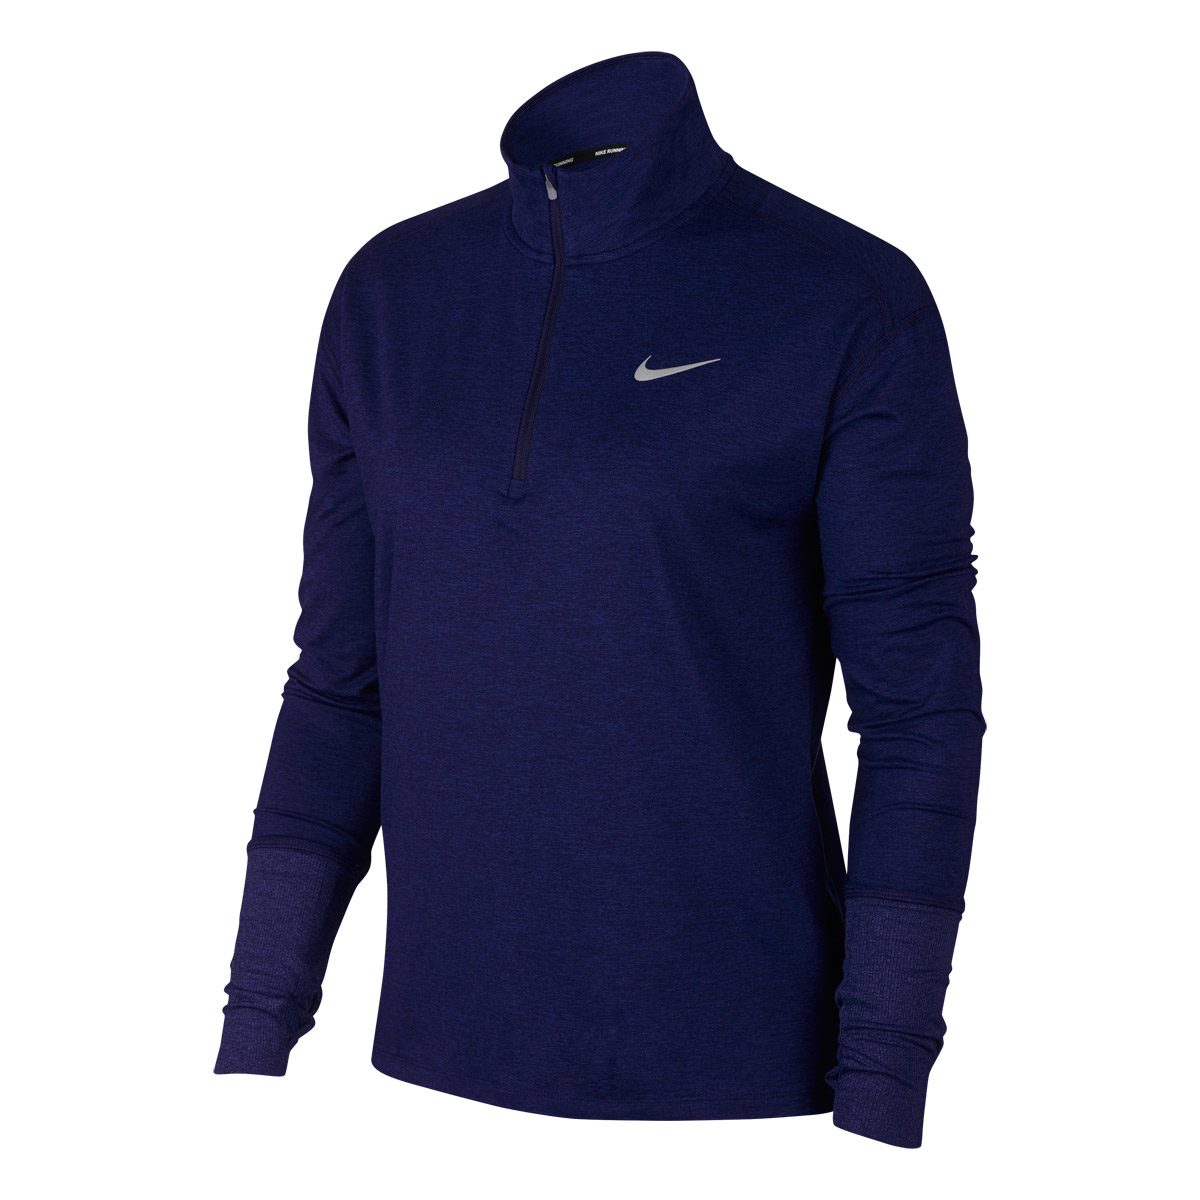 bdce1931 Nike Women's Dri-FIT Element Longsleeve Running Top - Indigo Force ...